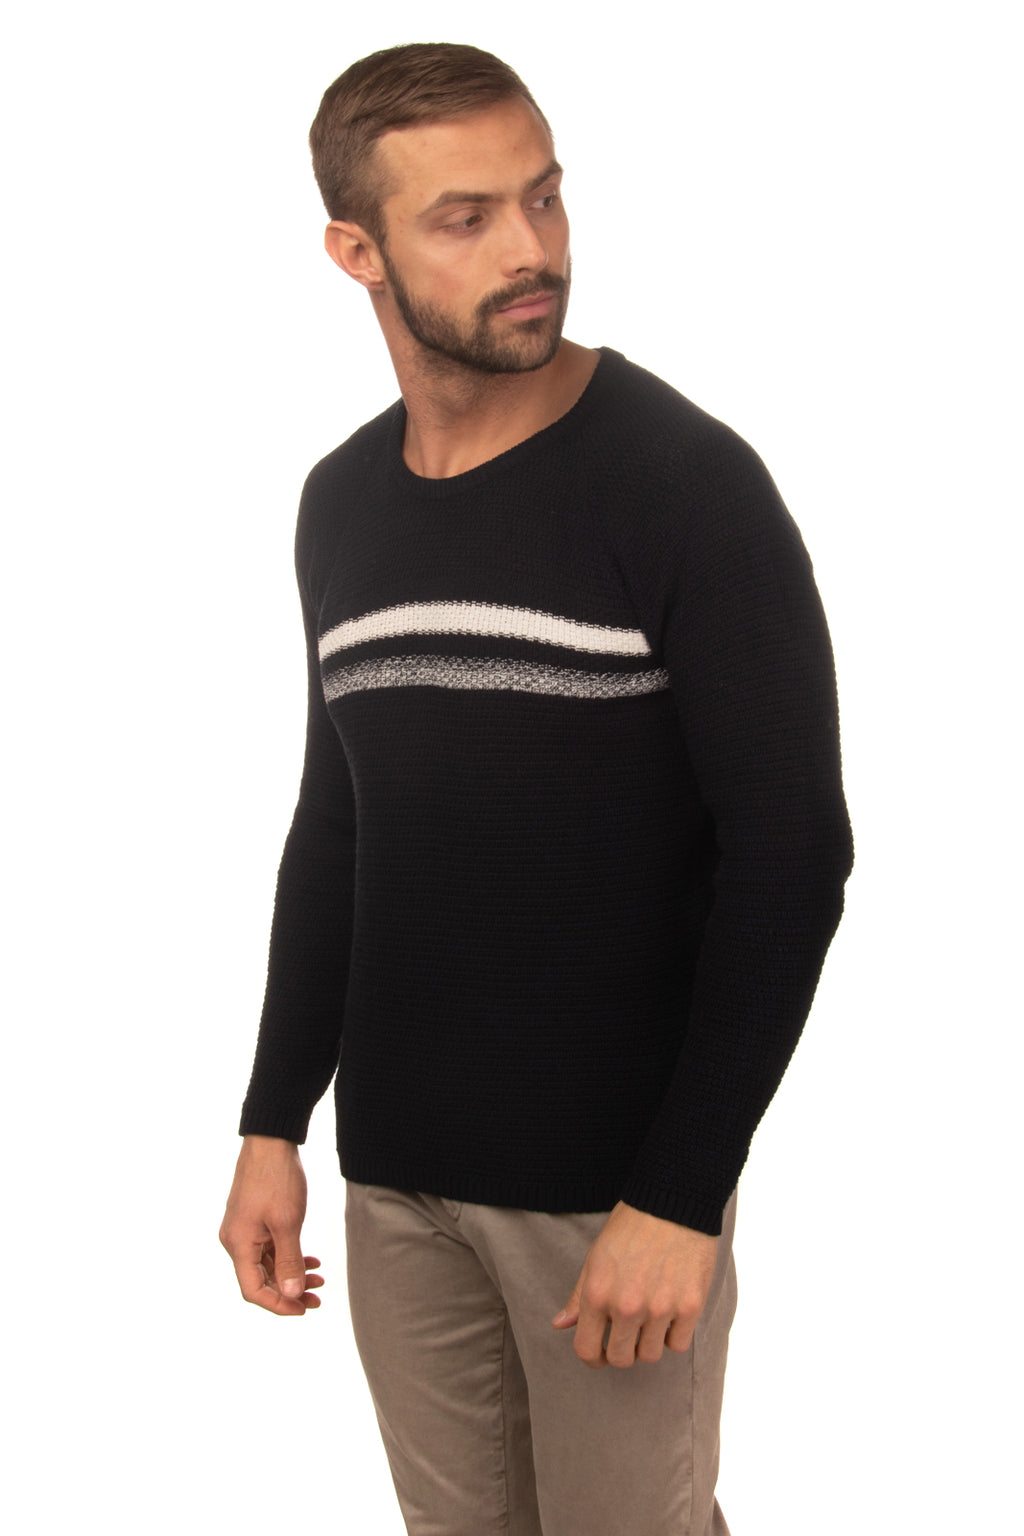 LIU JO UOMO Jumper Size L Long Raglan Sleeve Crew Neck Made in Italy GIROMAIS